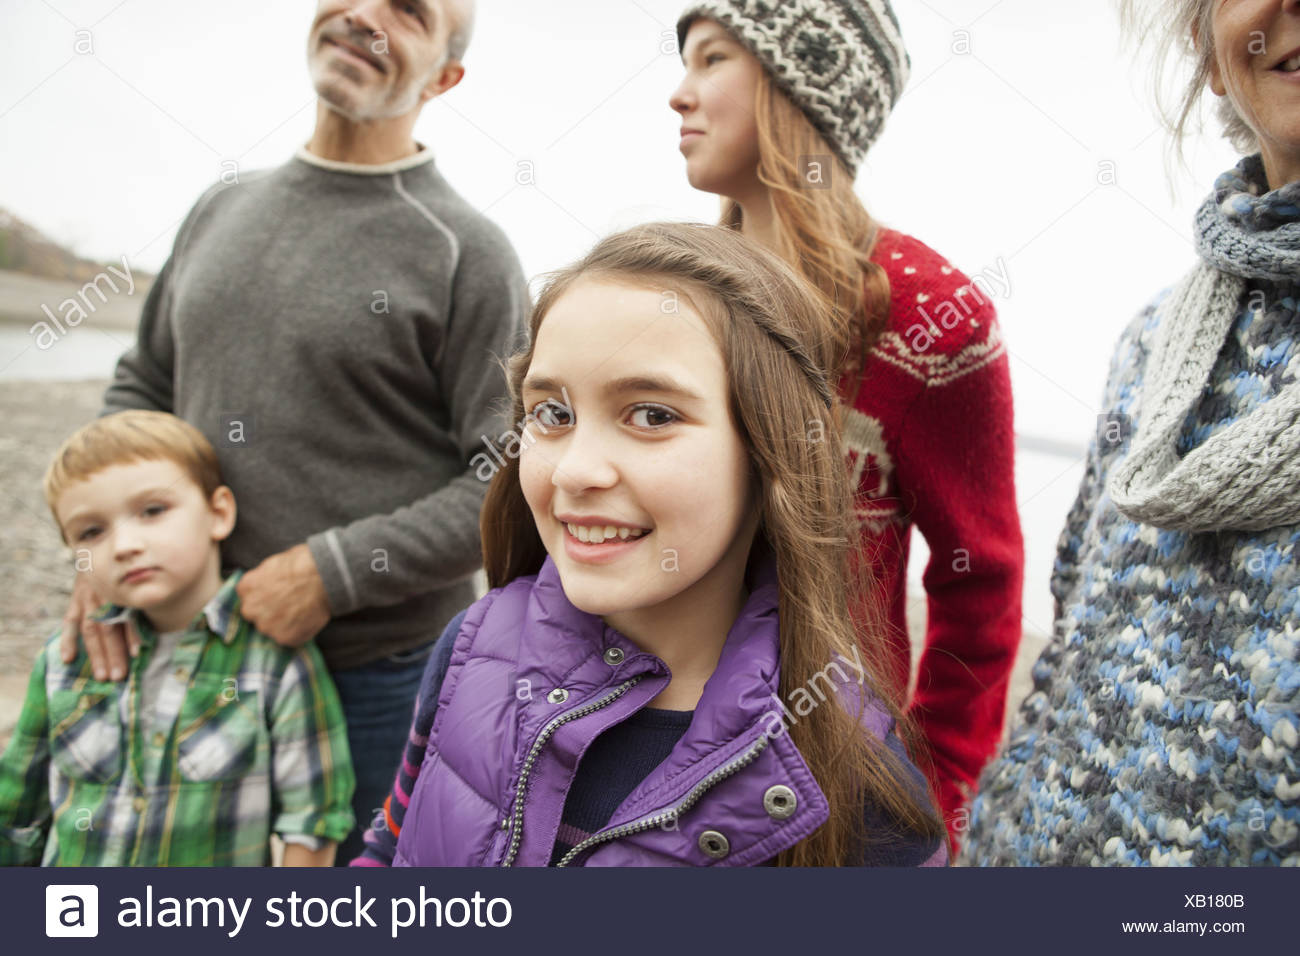 A day out at Ashokan lake. A group of people, adults, teenagers and children. - Stock Image